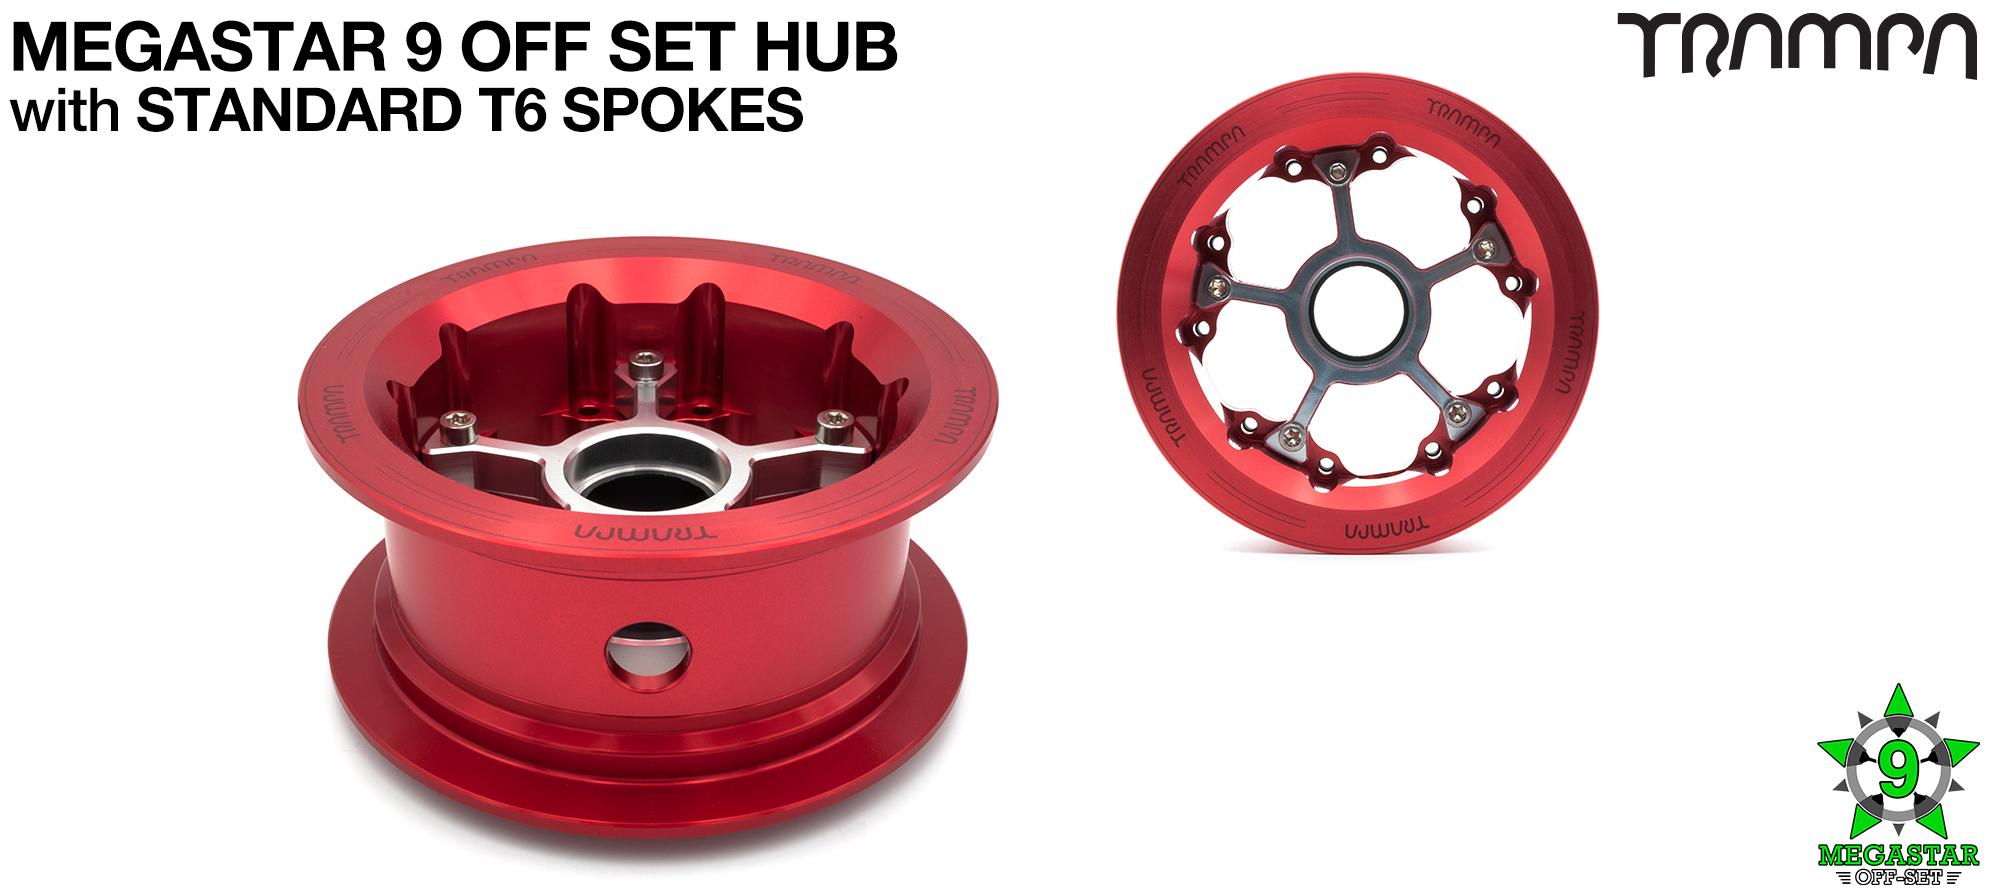 TRAMPA's 9 Inch MEGASTAR HUB! Build the MEGASTAR Hub of your dreams!! Any combination possible & fitsd 8 inch tyres too!